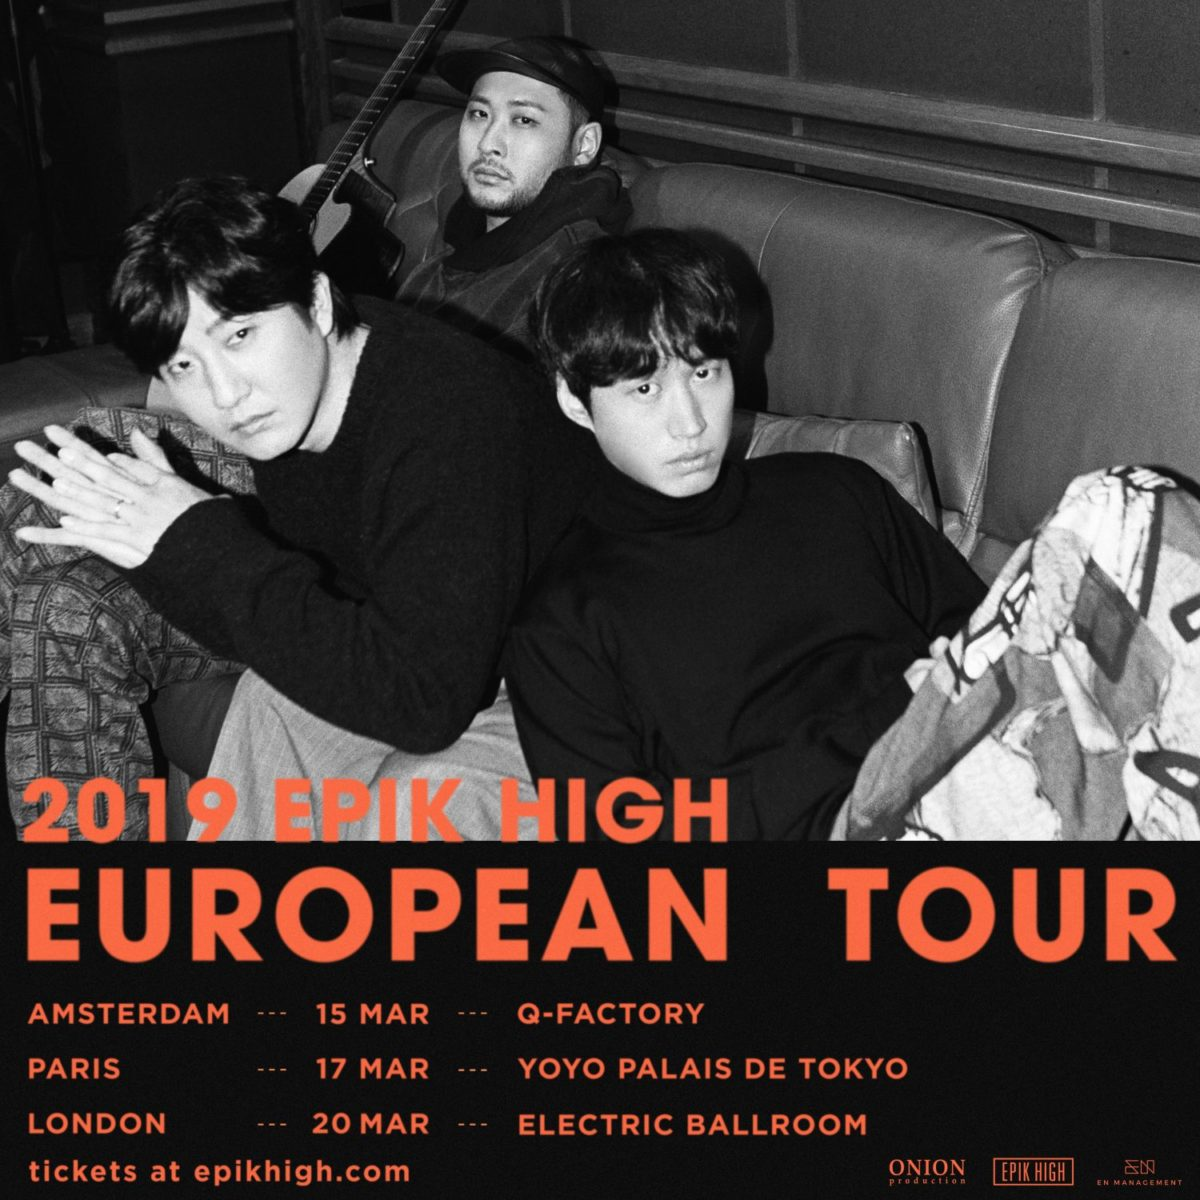 EPIK HIGH to tour Europe in March 2019